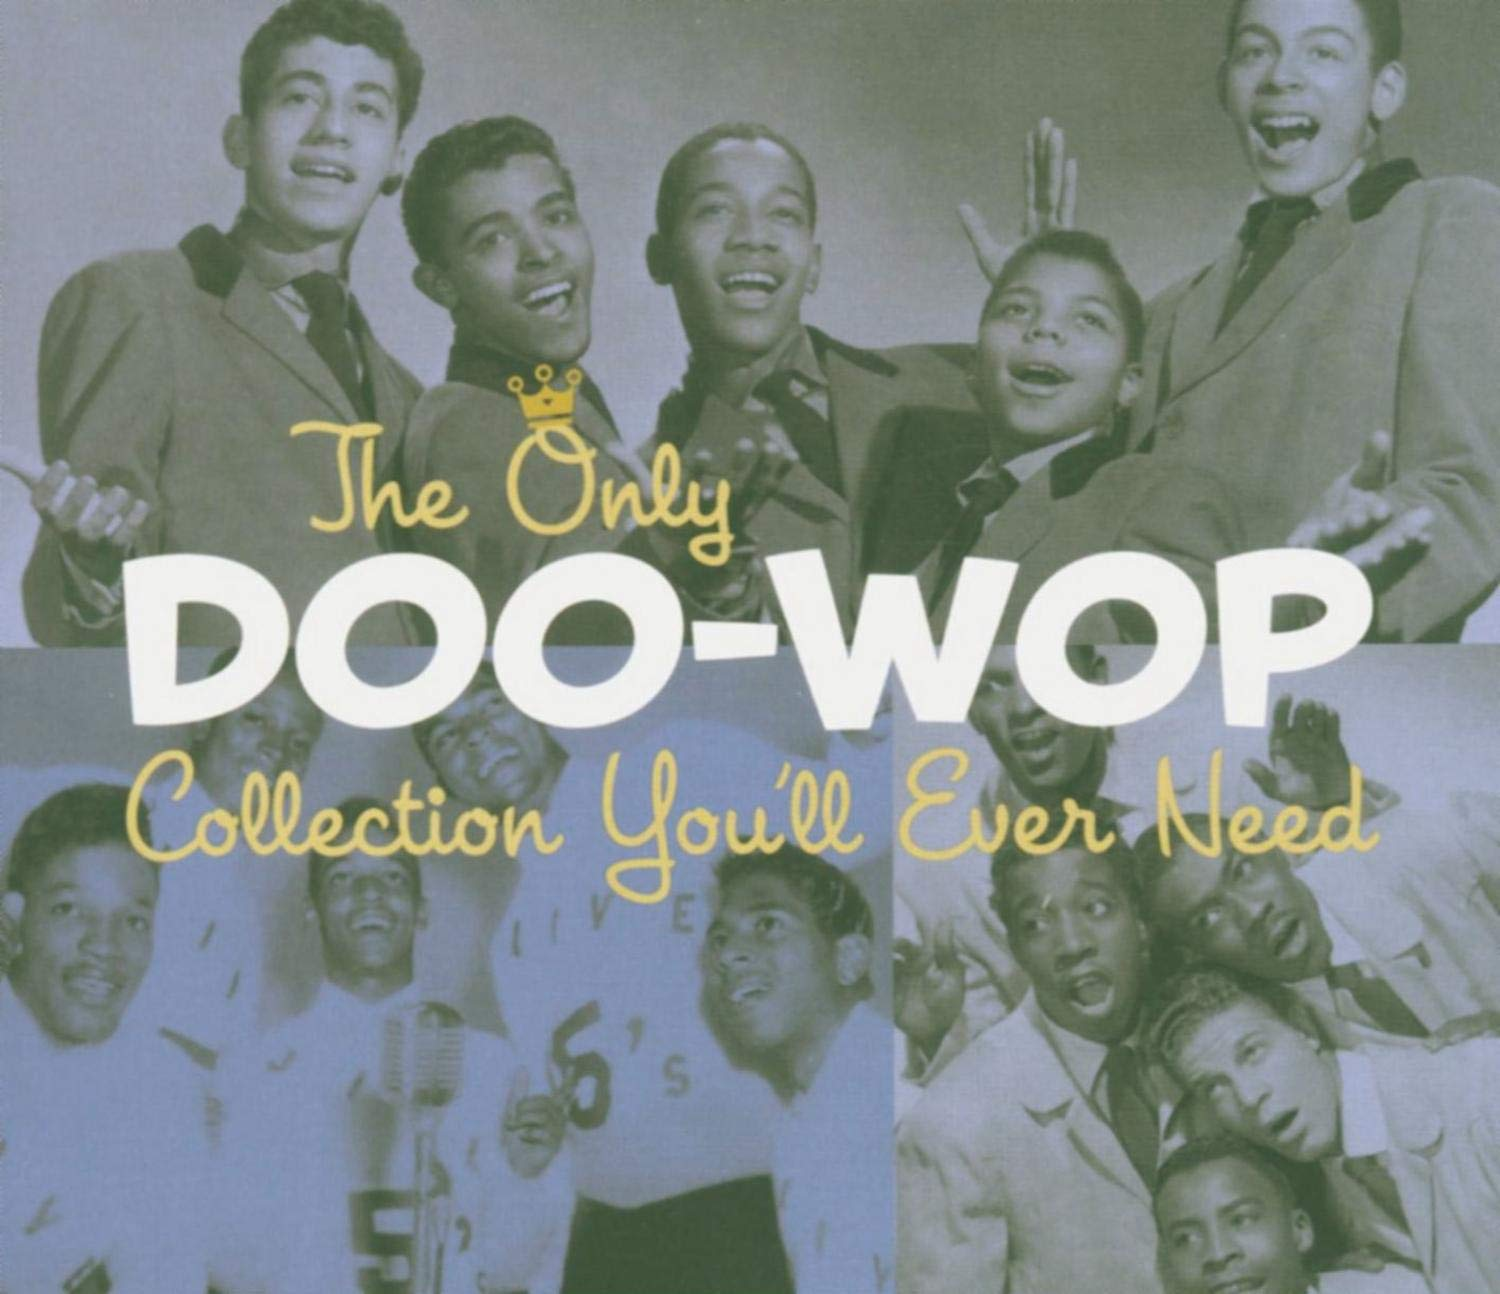 The Only Doo-Wop Collection You'll Ever Need by Shout Factory